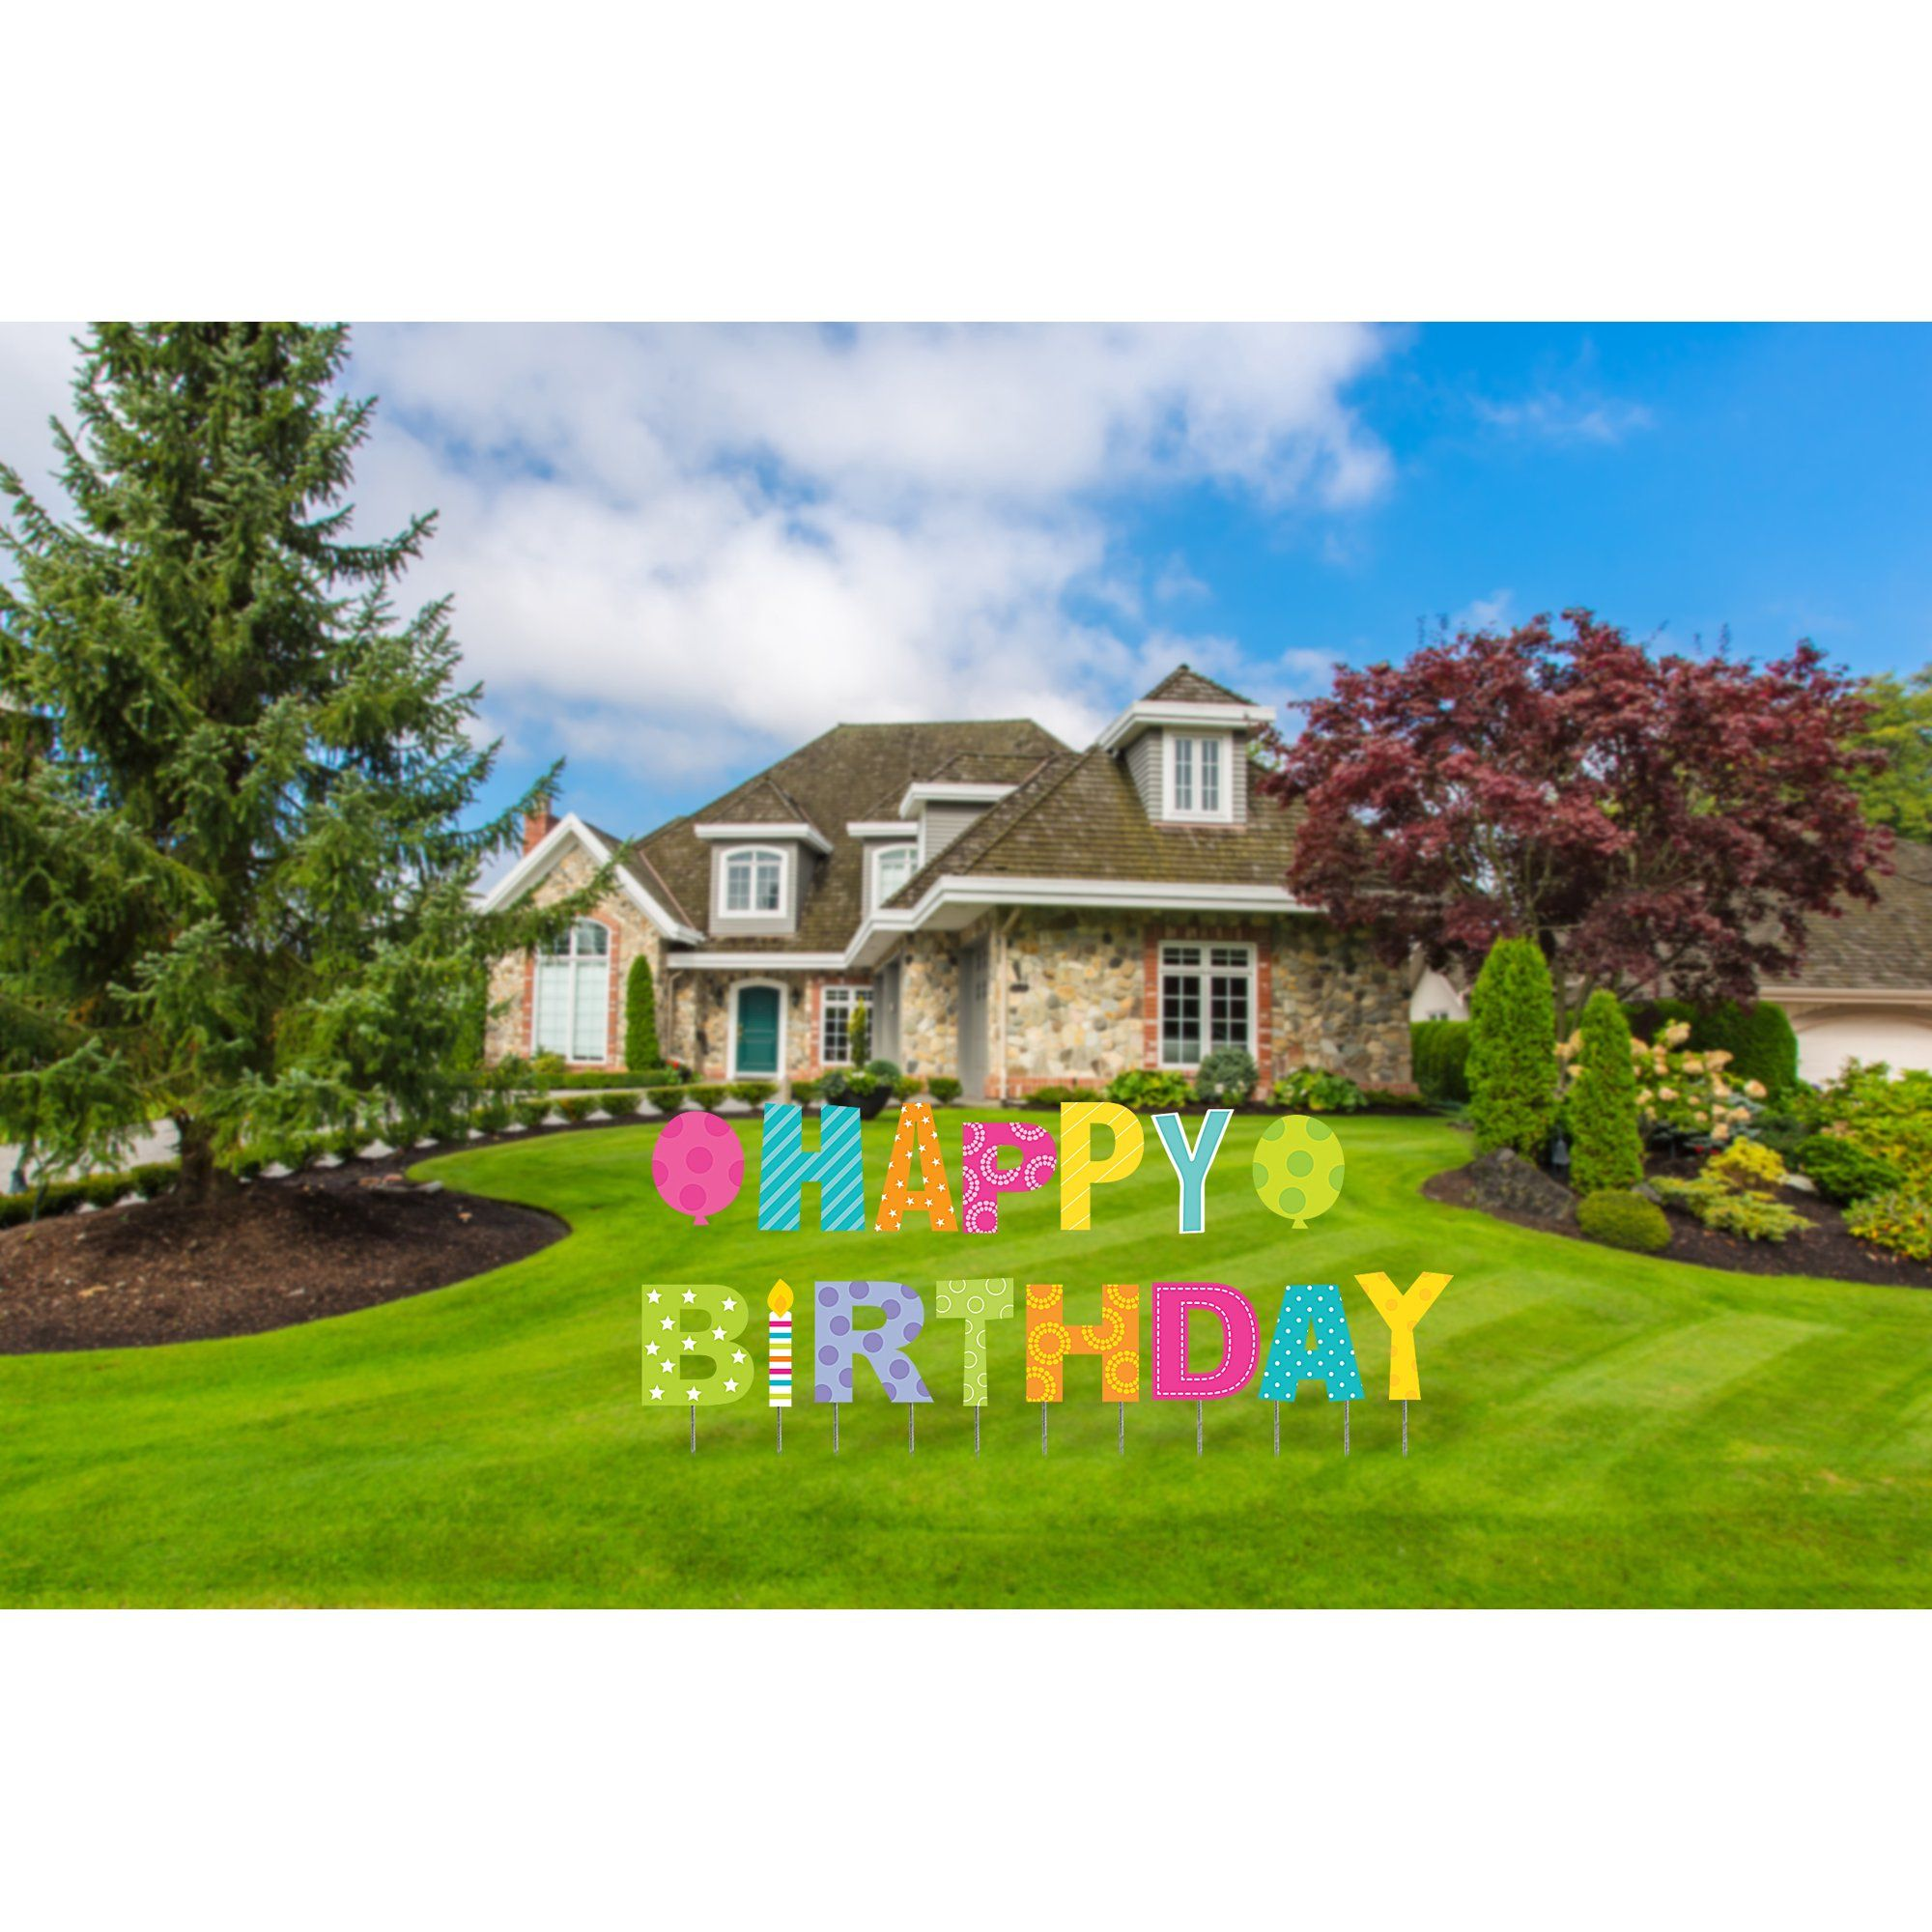 Happy Birthday Yard Sign, 15 pcs, Stakes Included, Outdoor